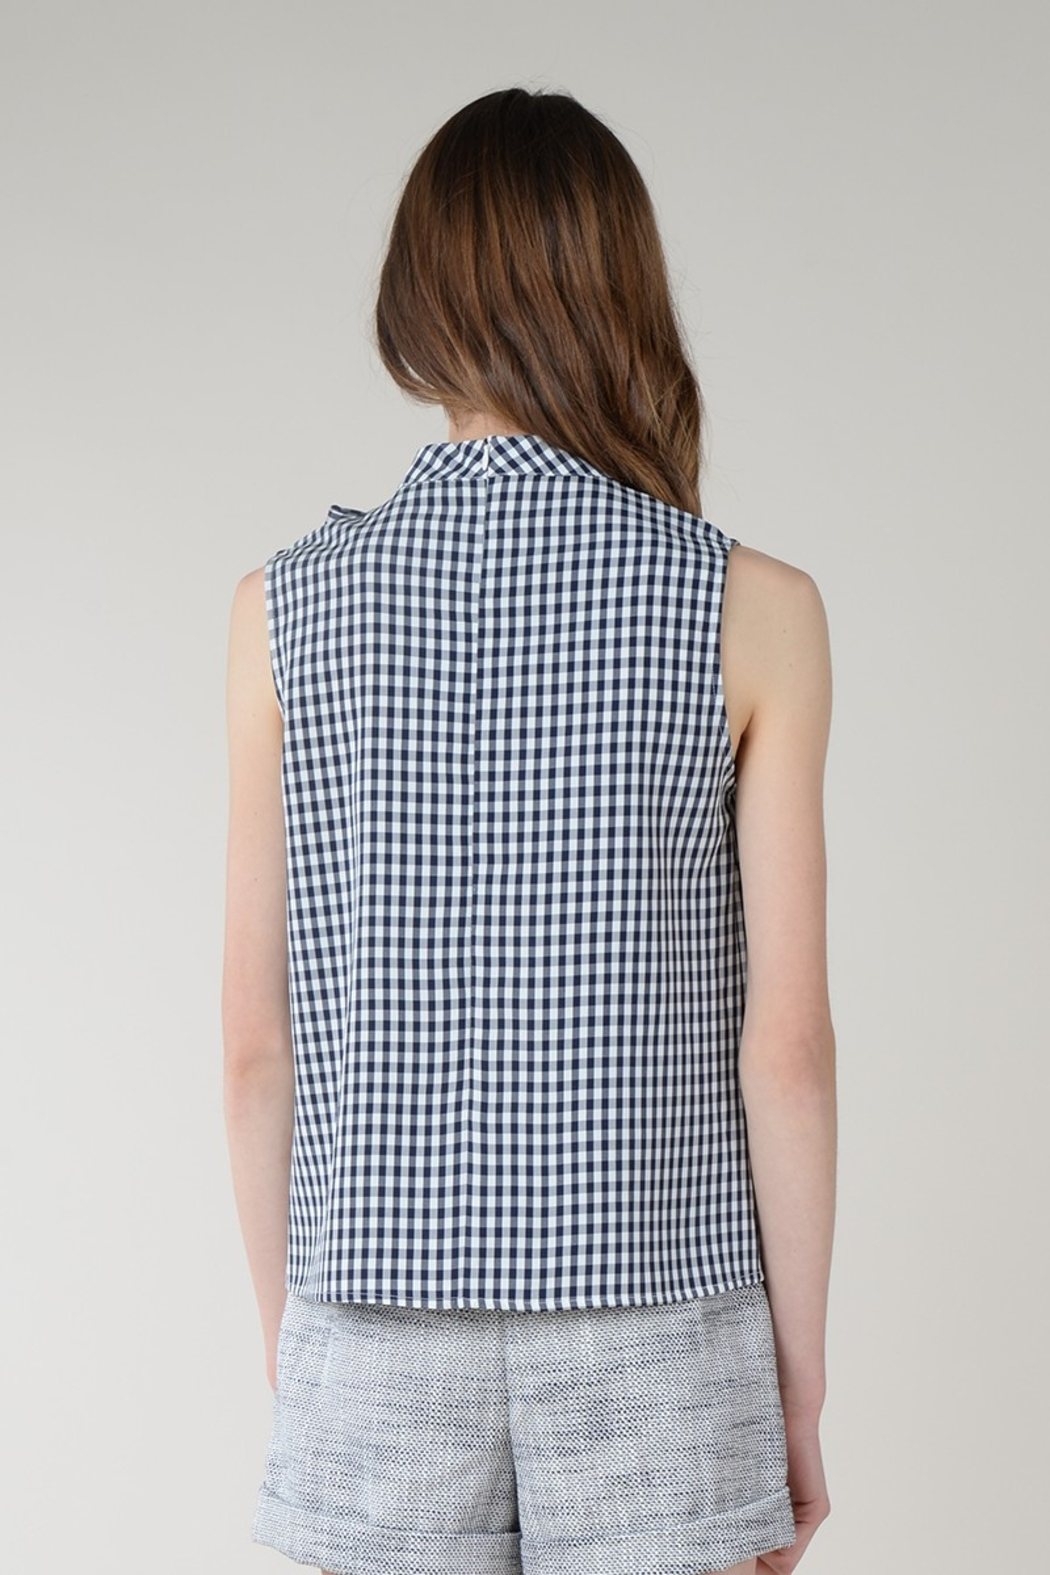 Molly Bracken SIDE BOW TOP SLEEVELESS - Side Cropped Image